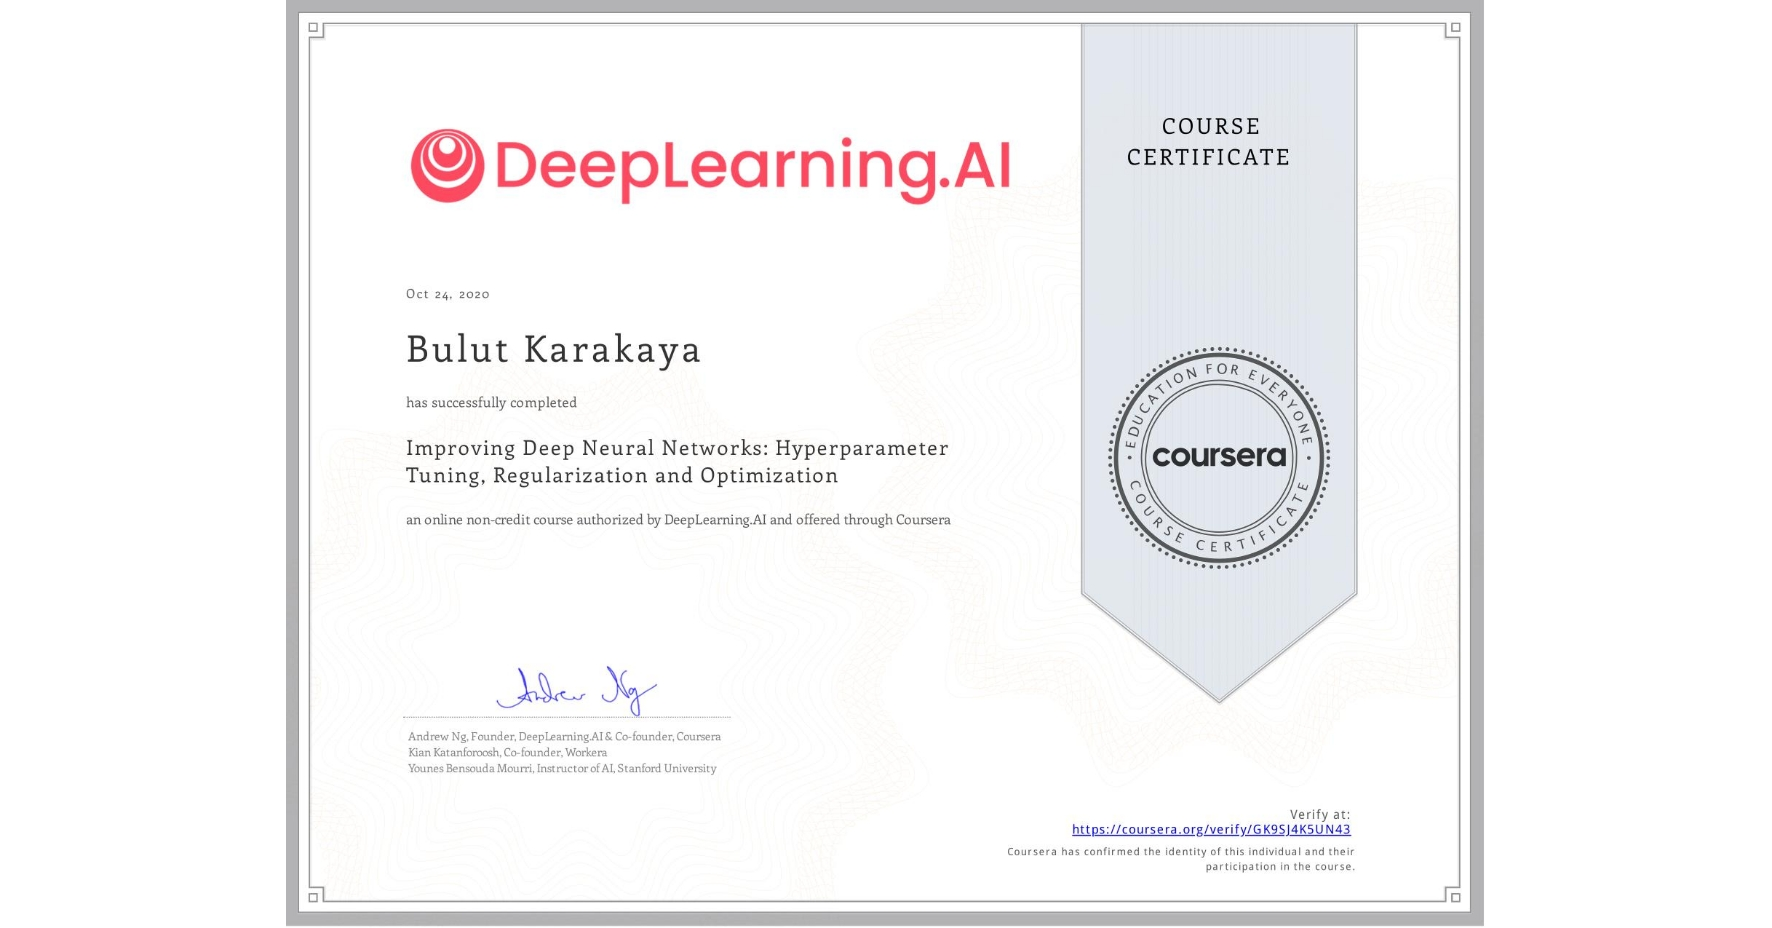 View certificate for Bulut Karakaya, Improving Deep Neural Networks: Hyperparameter Tuning, Regularization and Optimization, an online non-credit course authorized by DeepLearning.AI and offered through Coursera